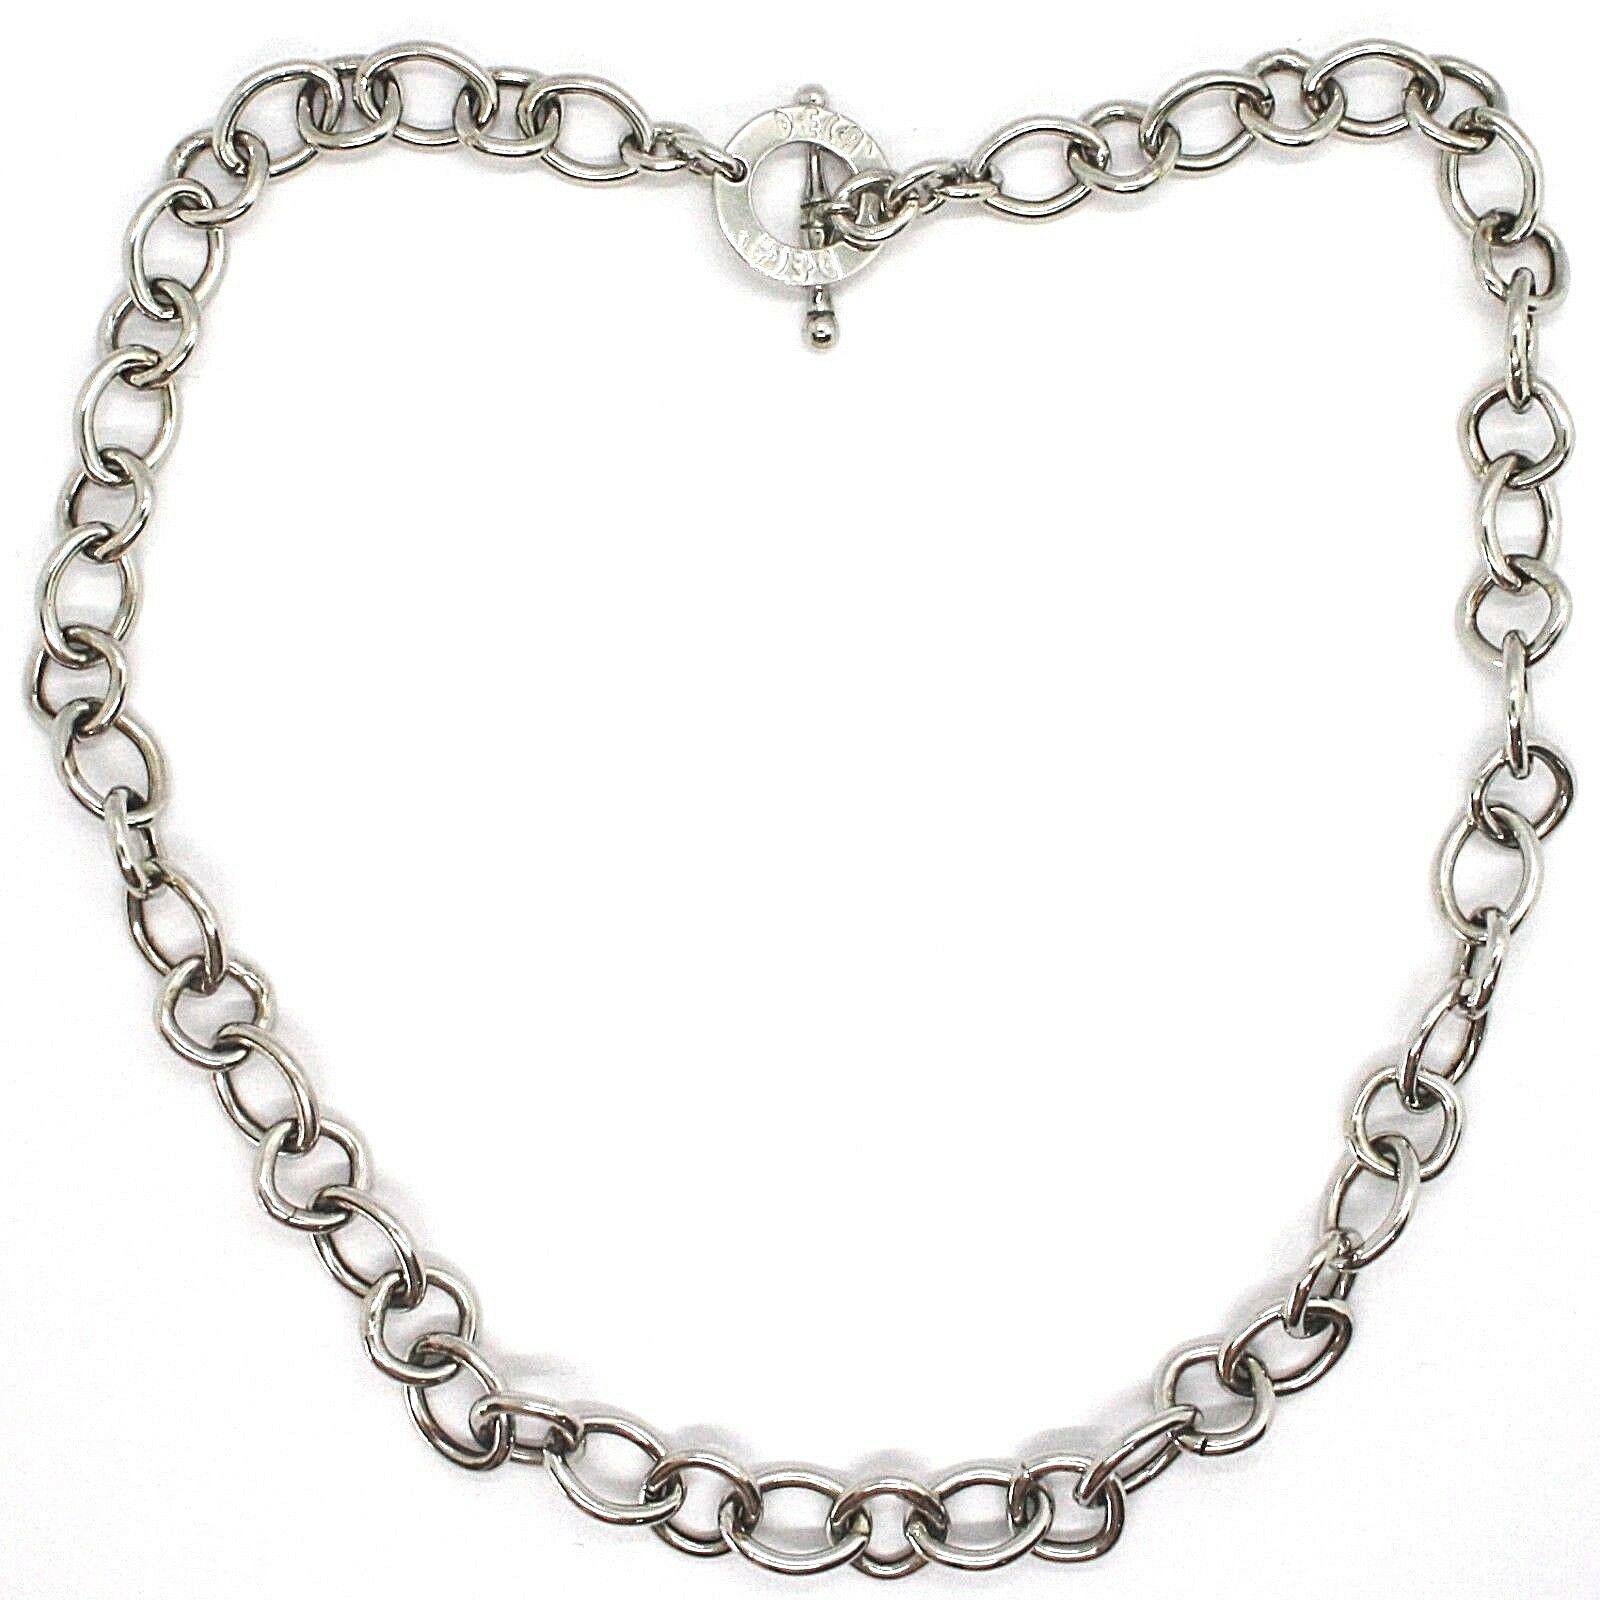 Silver 925 Necklace Chain, Oval Square, Designation, Long 48 cm, Fastening T